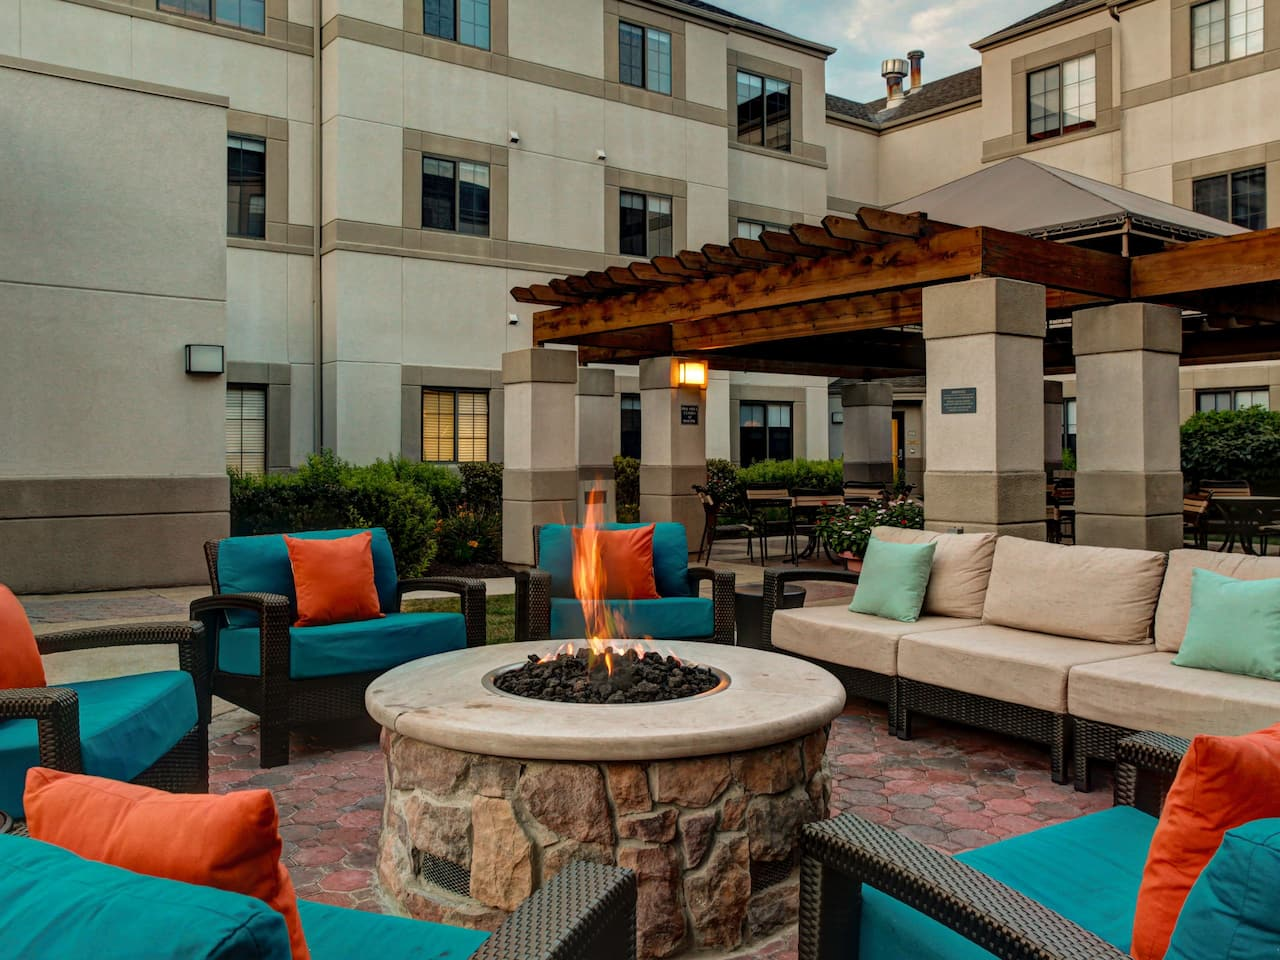 Hyatt House Morristown Fire Pit Patio